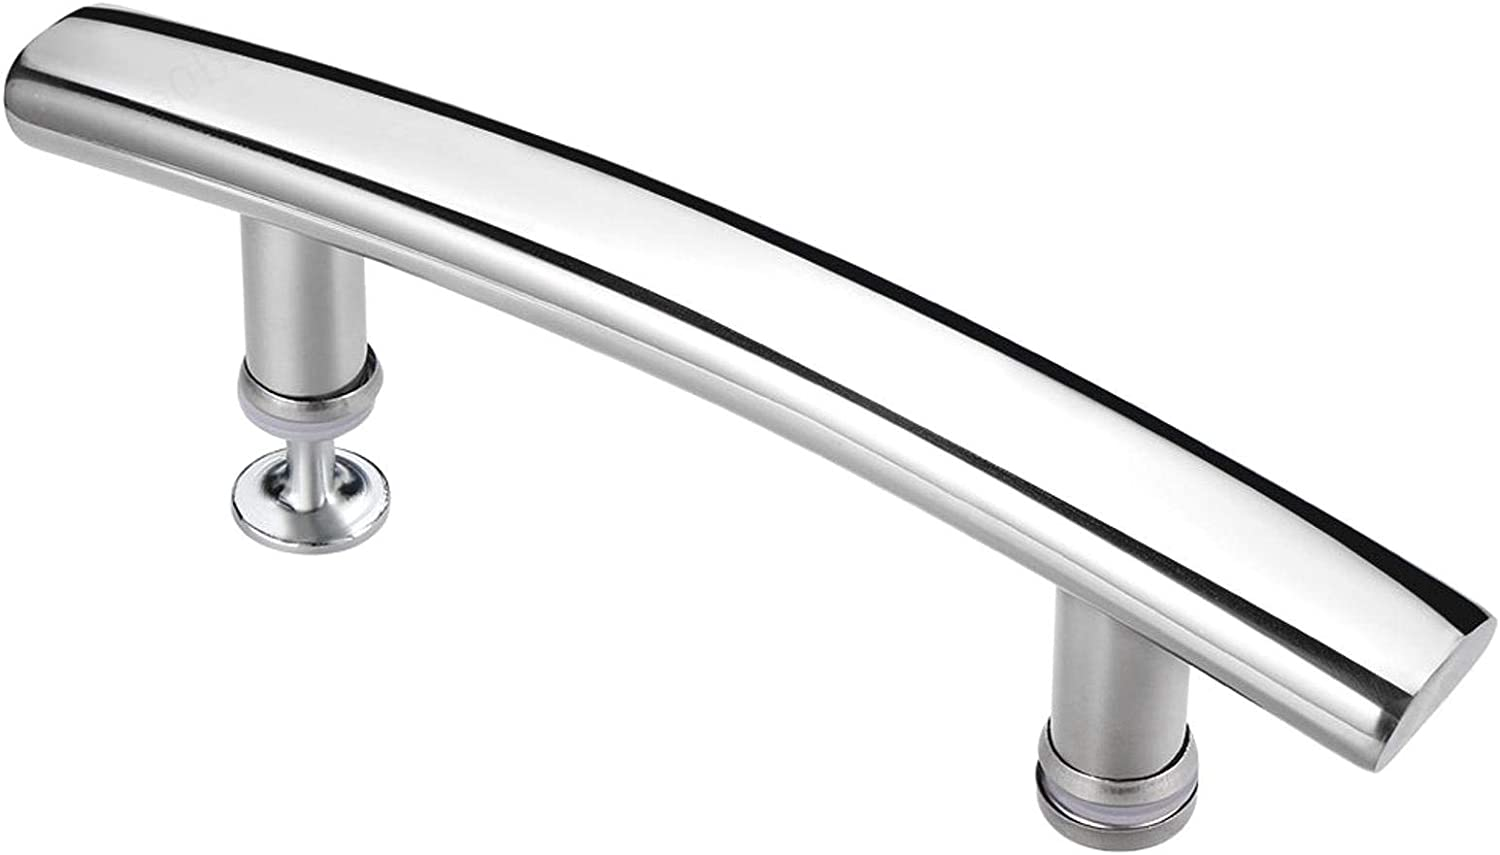 DeoMeat Arc Shower Door Handle Polished Center 304 Stainless Steel 145mm Hole